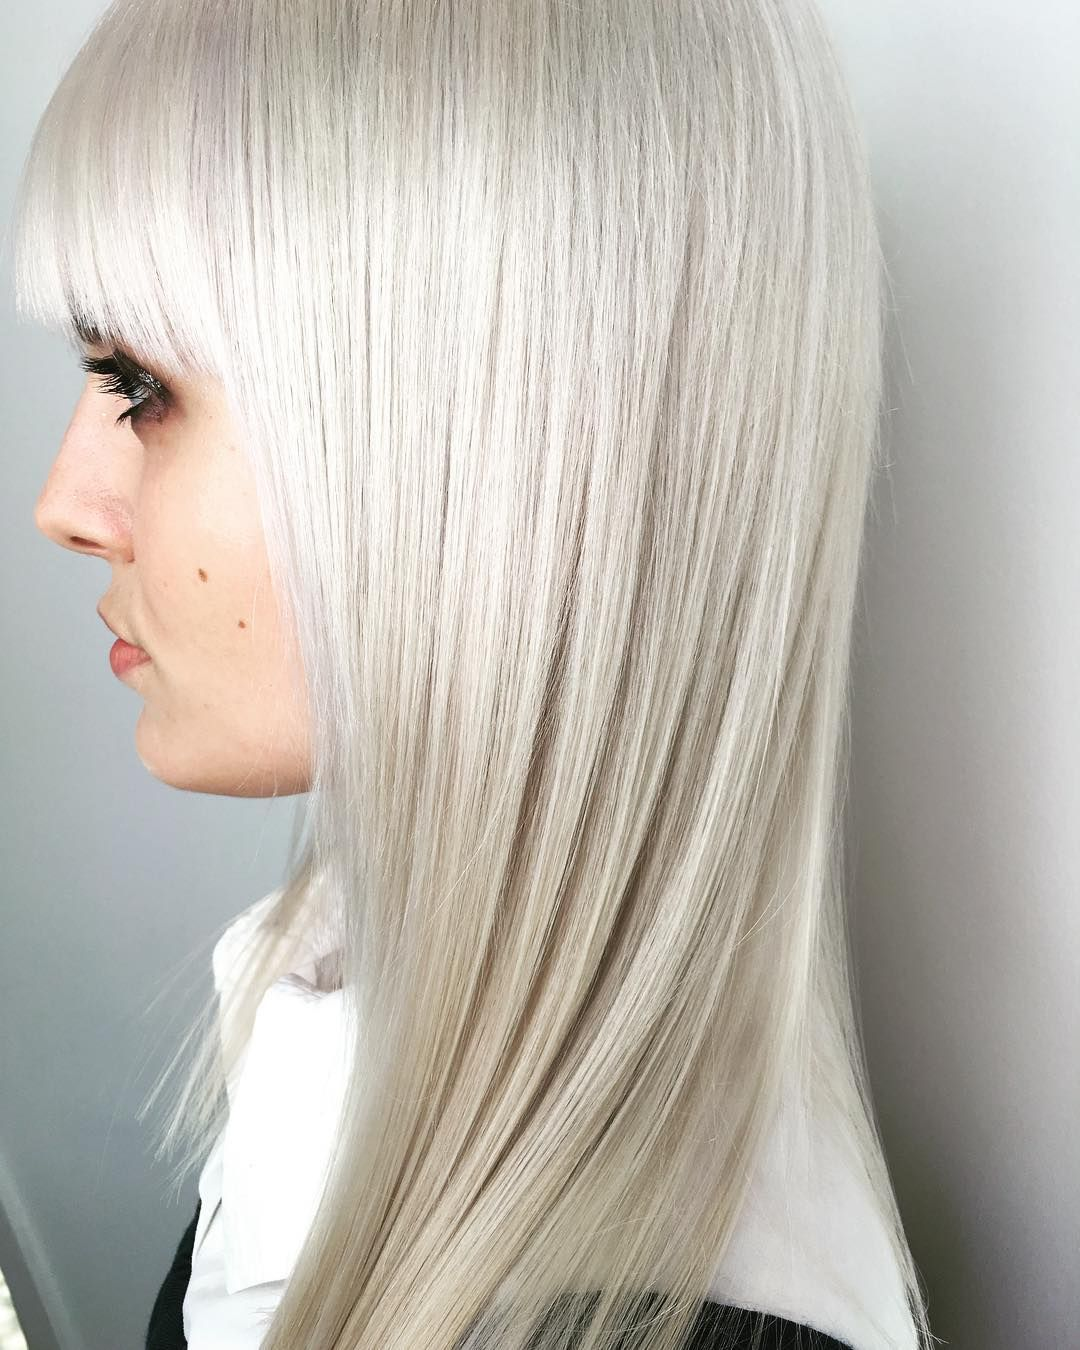 A Frosted Blonde Hair Color Finished Off With Razor Sharp Glass